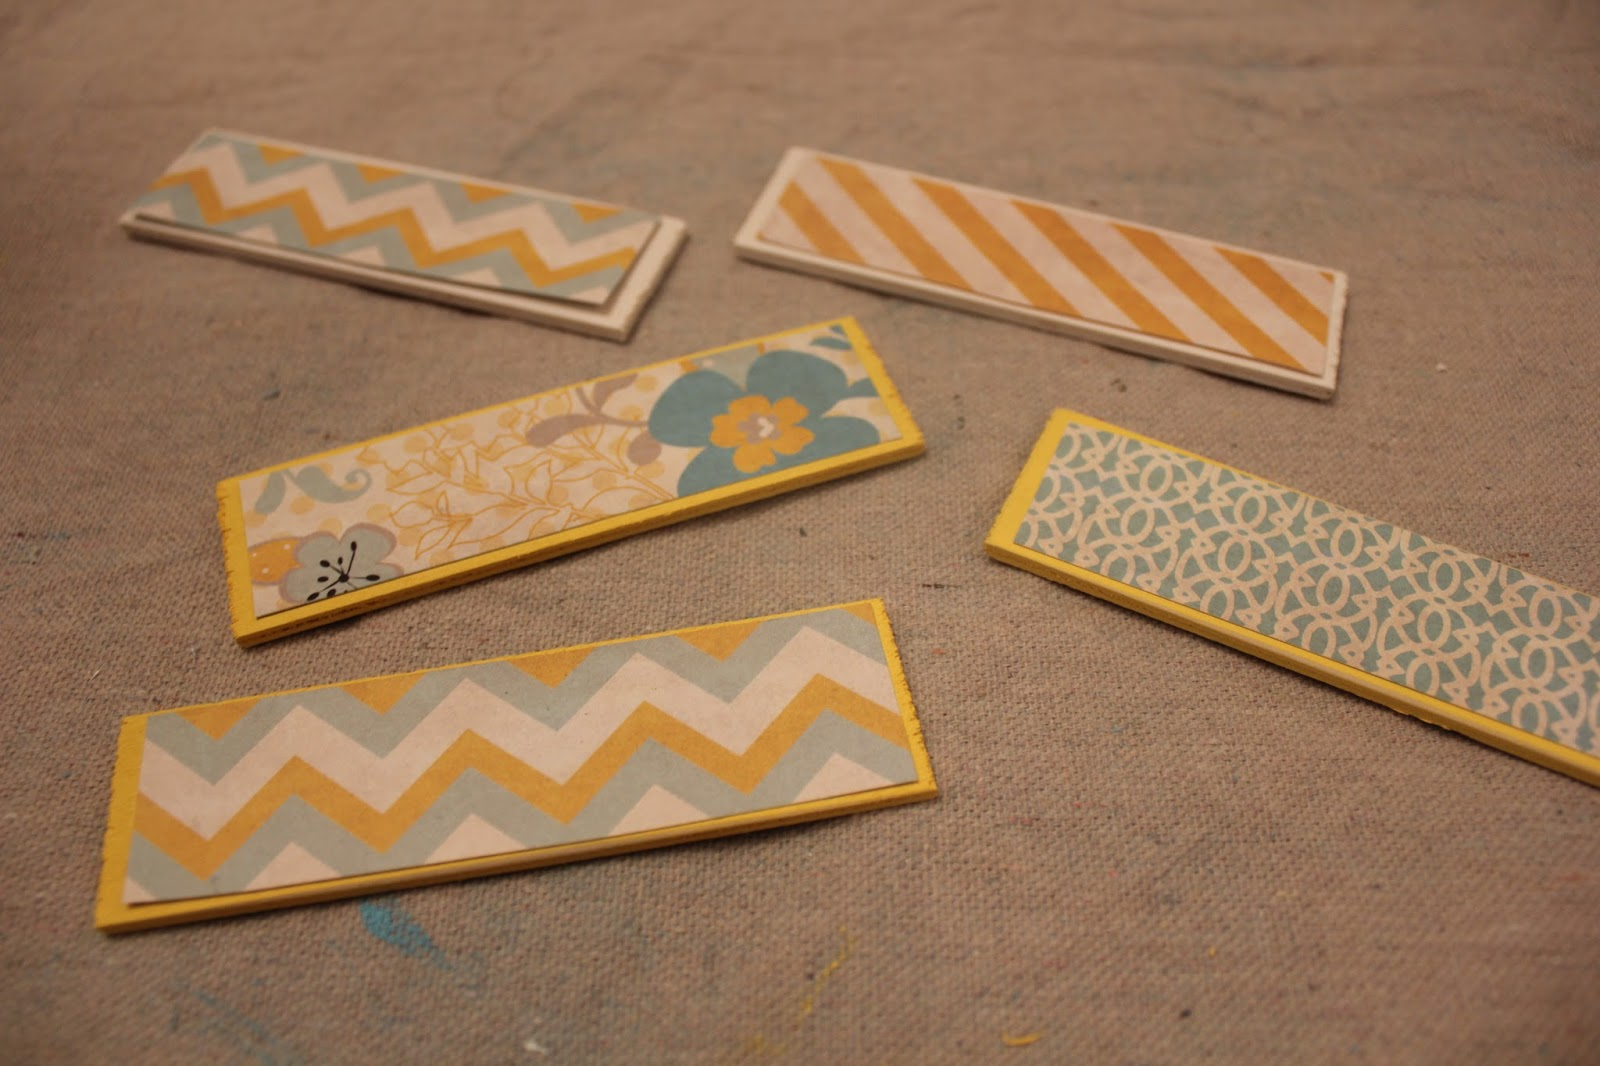 How to put scrapbook paper on wood - I Then Painted All The Tag Wood Pieces That I Would Be Adding To The Block Once Those Were Dry I Cut Out Some Scrapbook Paper And Added Those To One Side